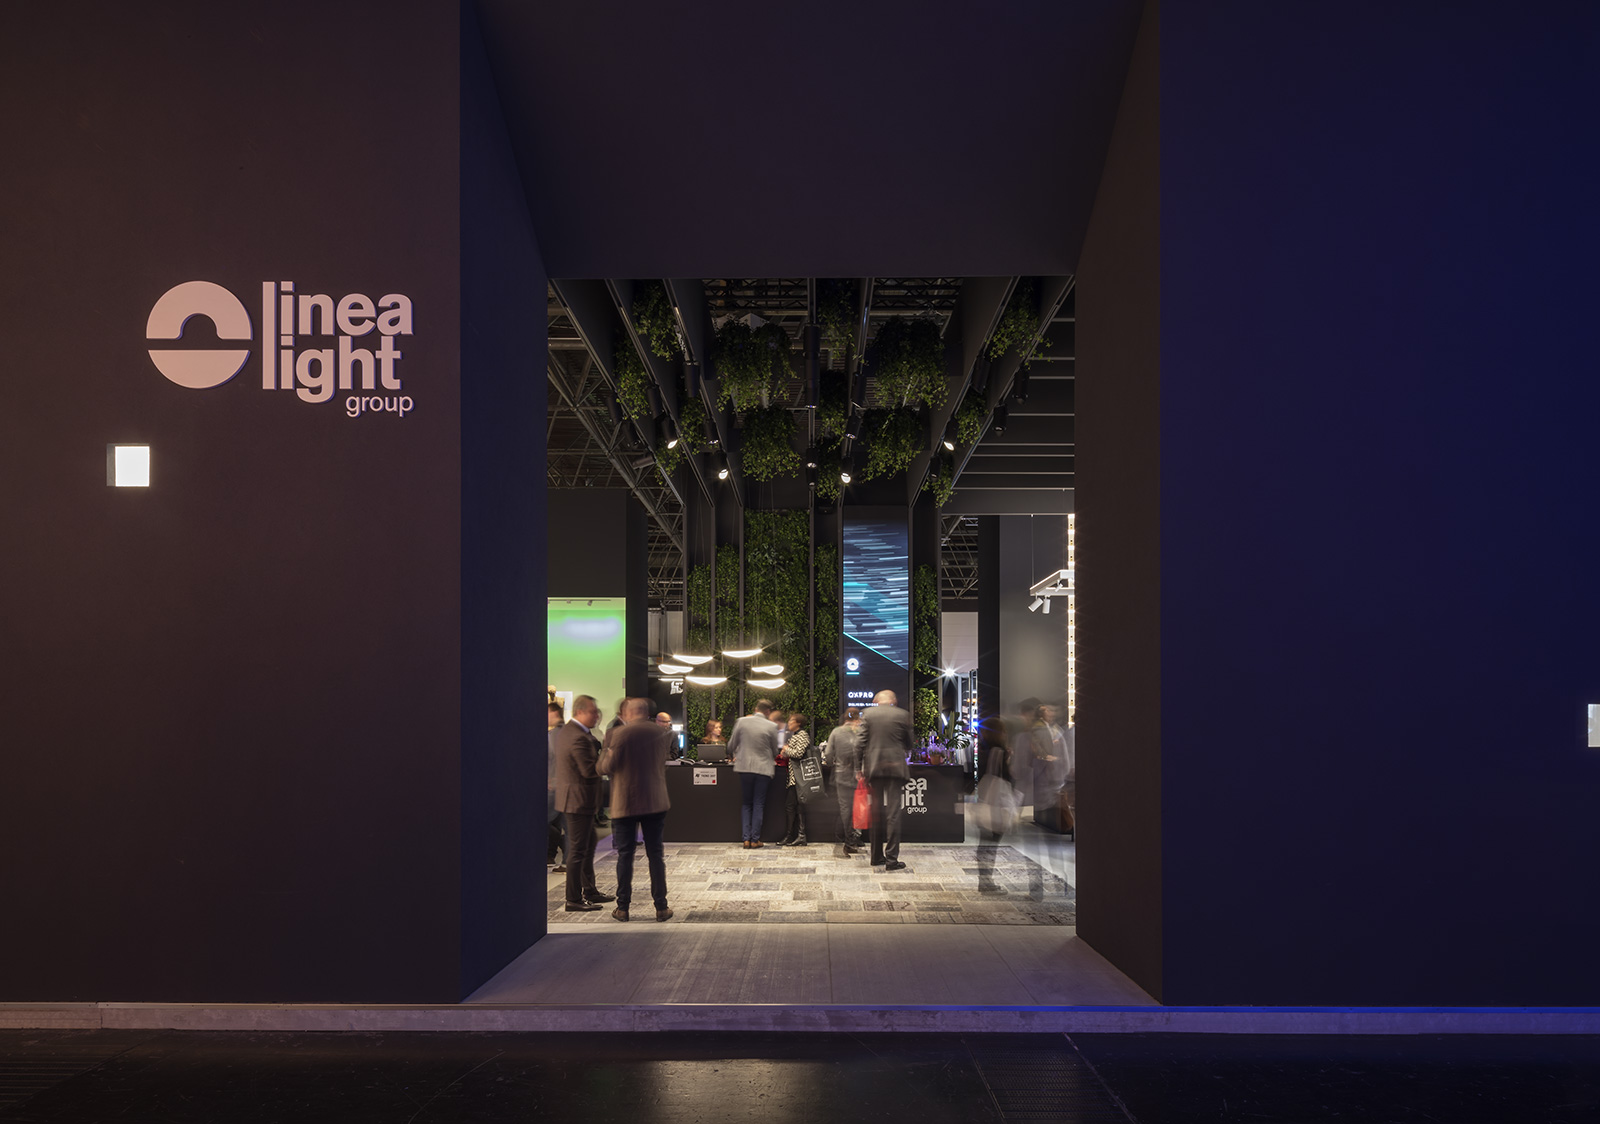 Meet. Feel. Show. Enjoy the light | Bericht über die Messe Euroshop 2017